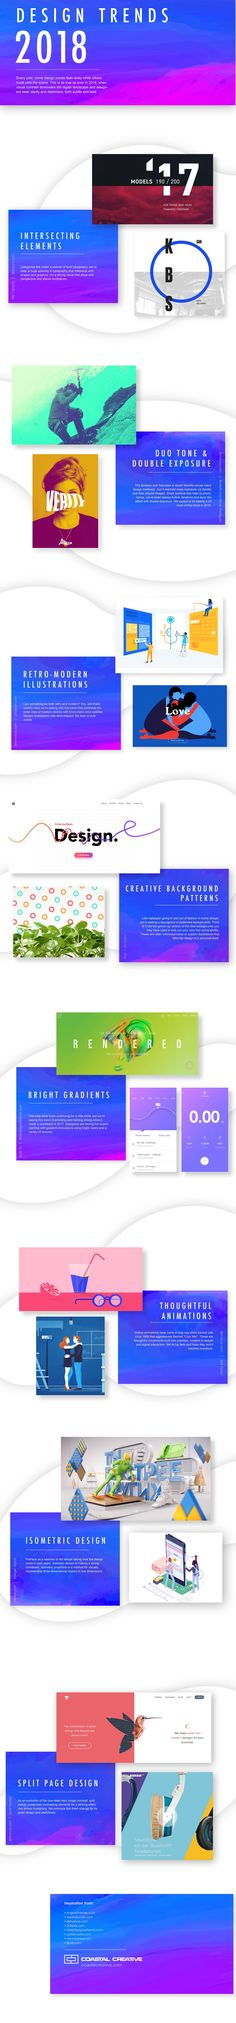 Digital And Graphic Design Trends in 2017: What's Hot and What's Not - #infographic / Digital Information World